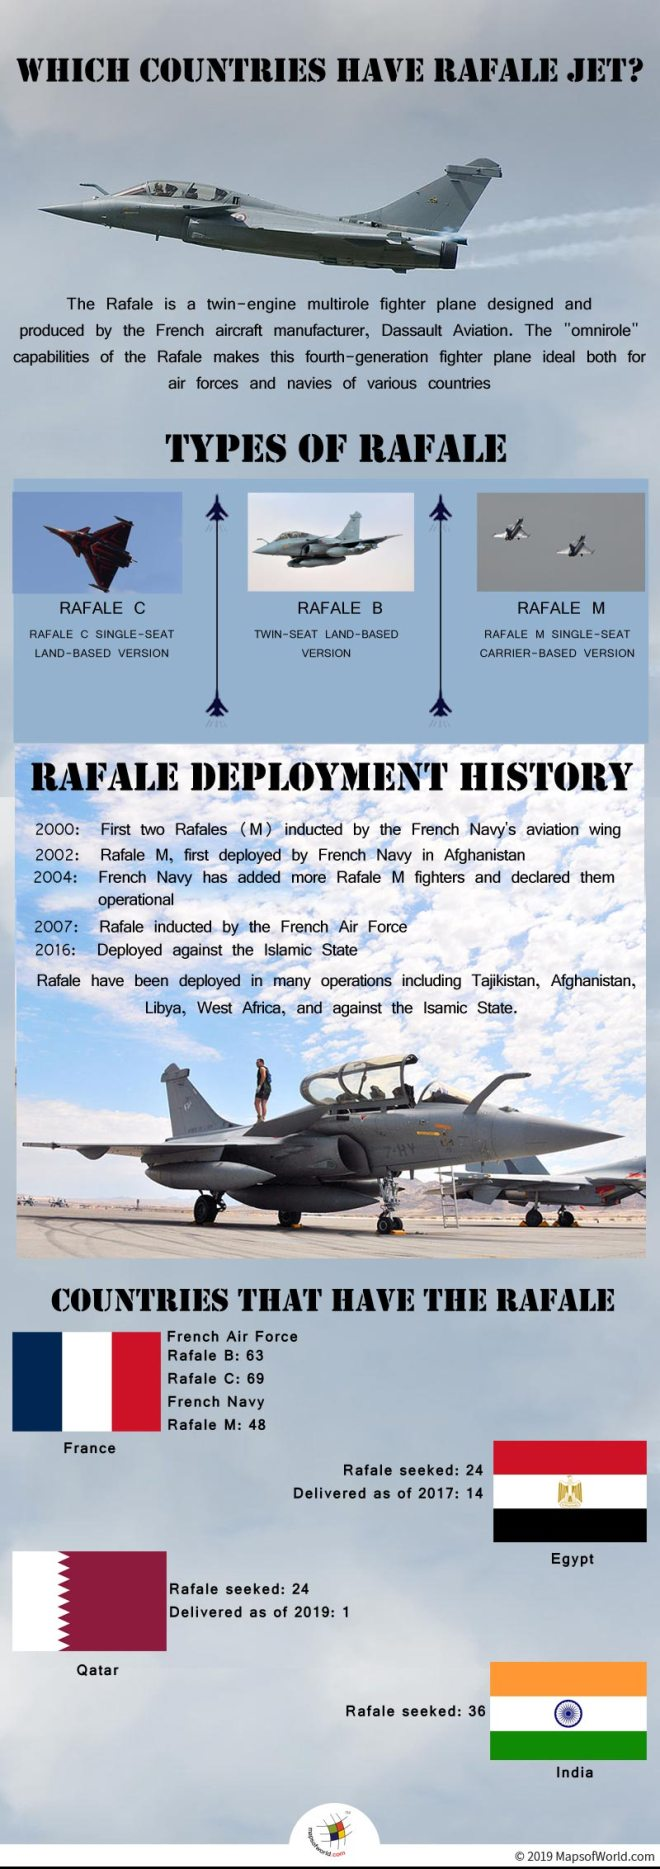 Infographic Giving Details on Rafale Jet